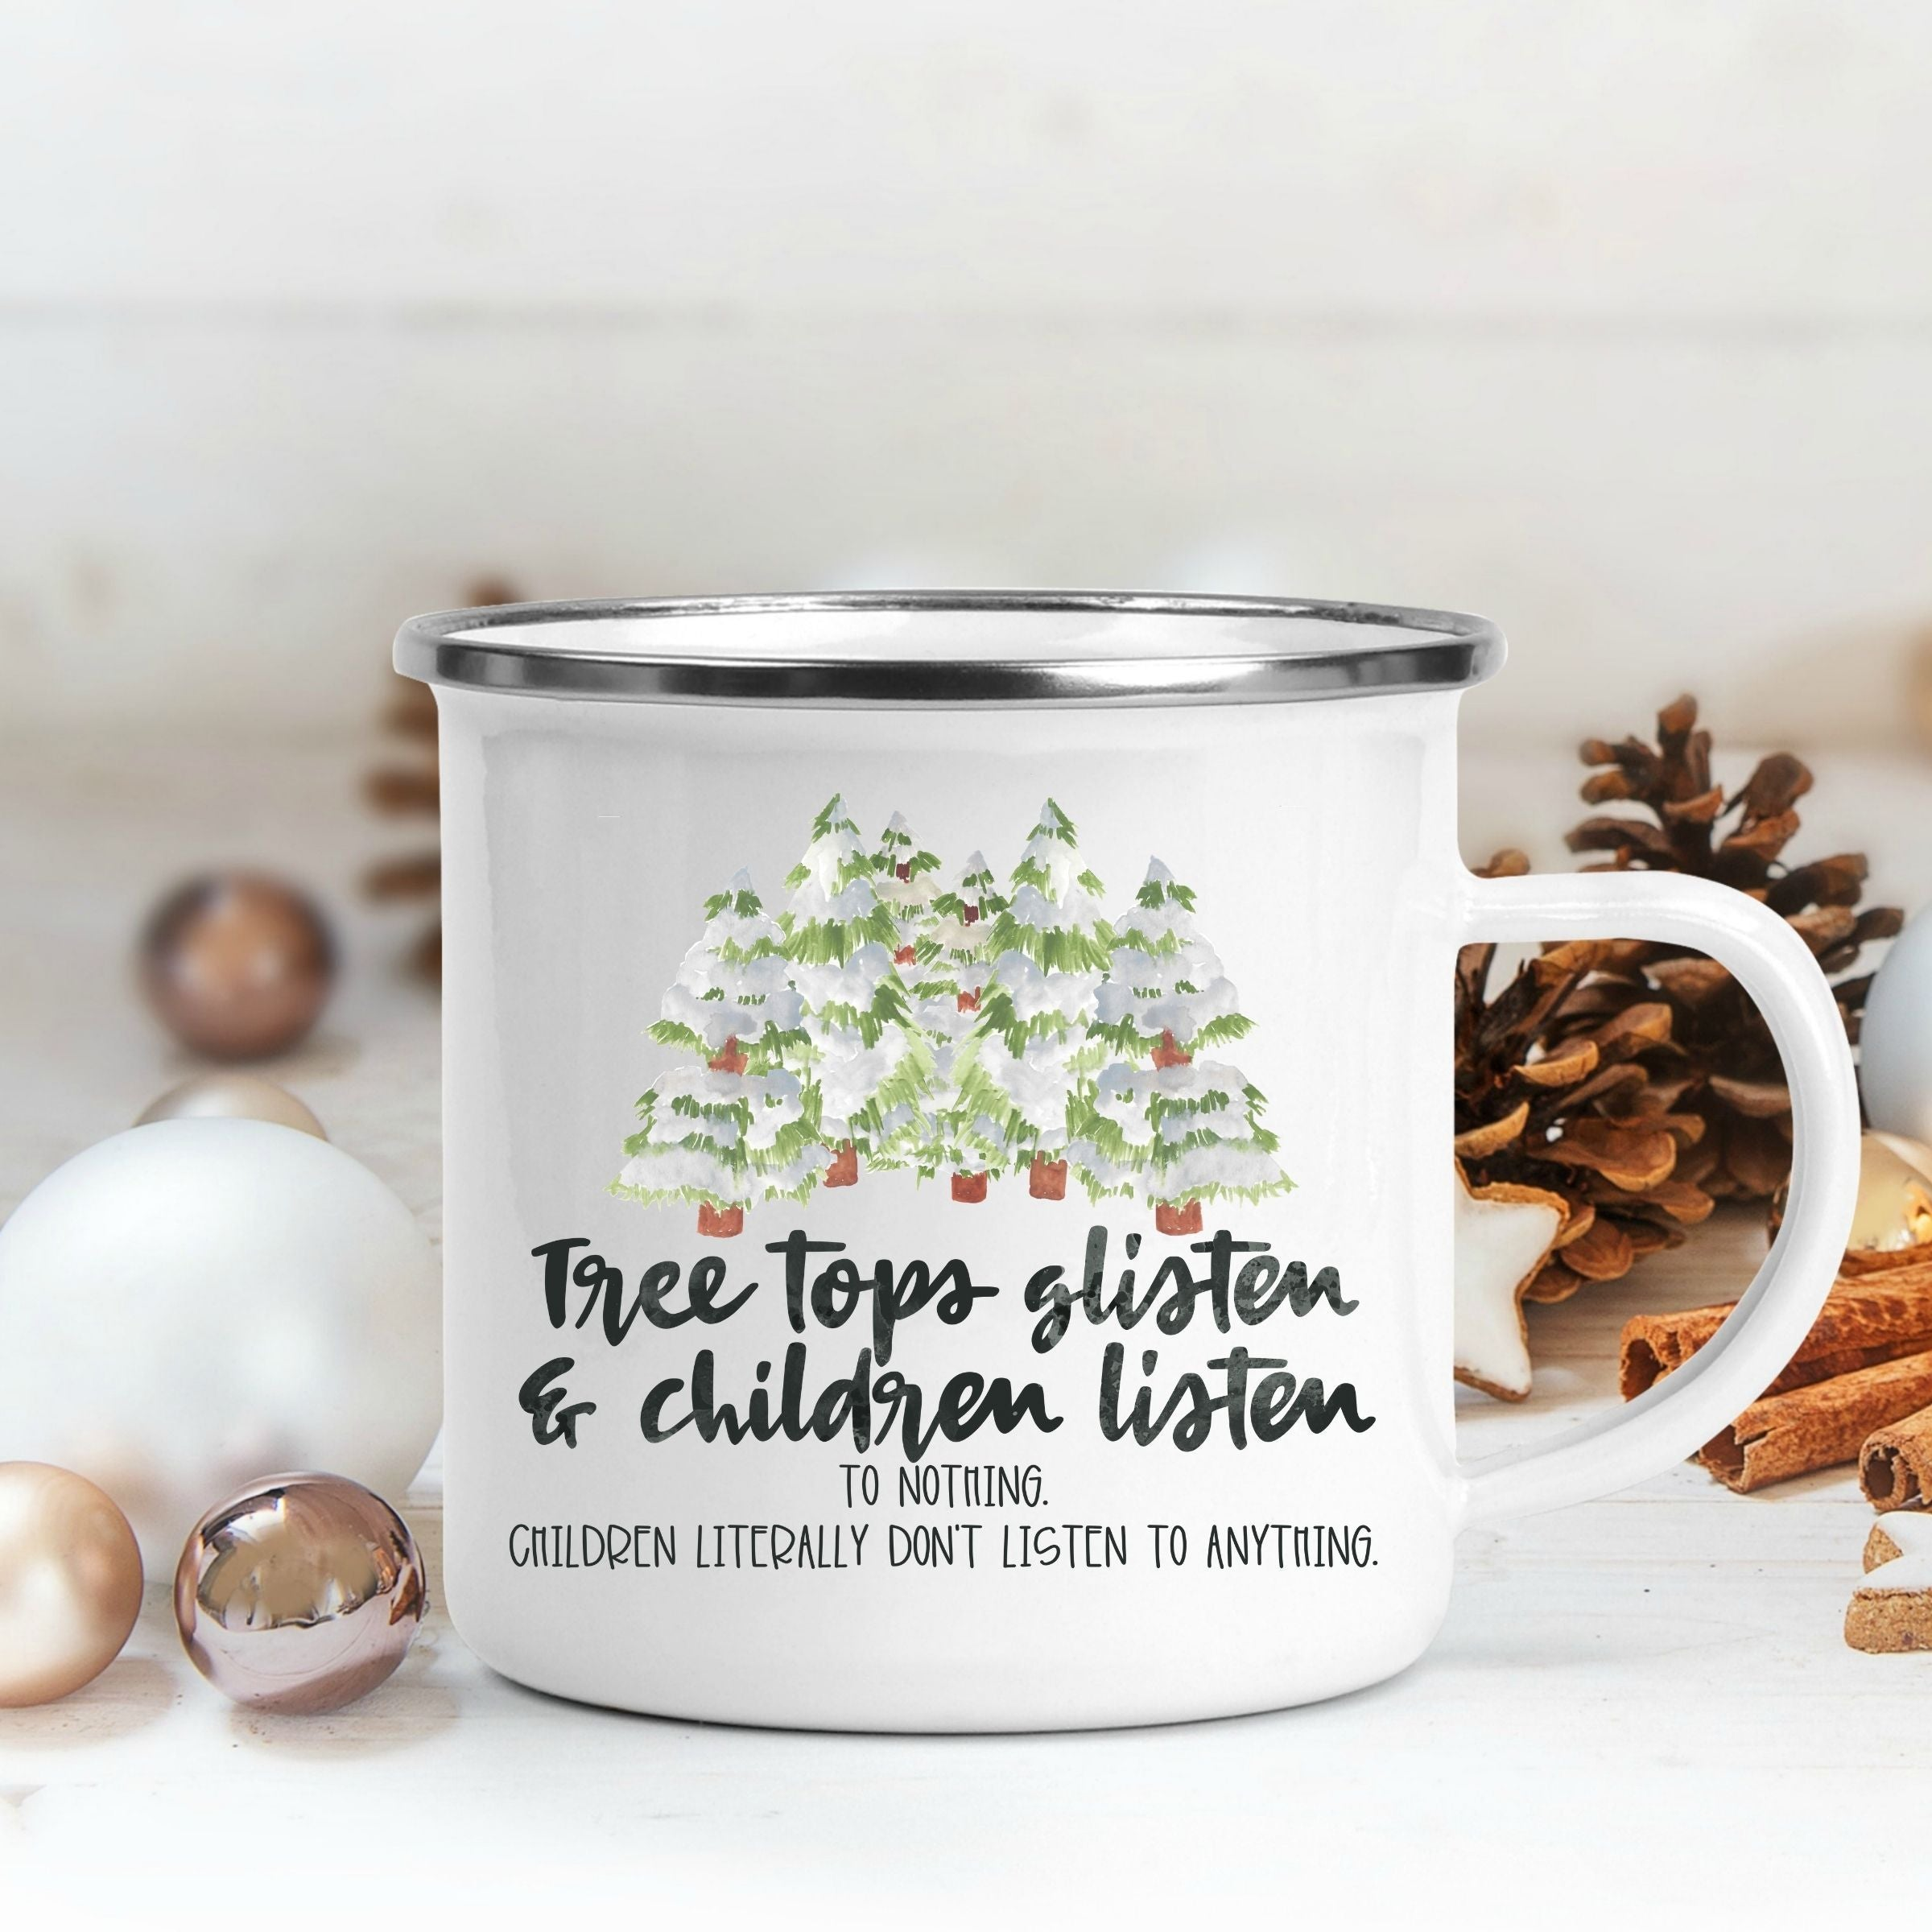 S-Tree Tops Glisten Campfire Mug-Shop-Wholesale-Womens-Boutique-Custom-Graphic-Tees-Branding-Gifts